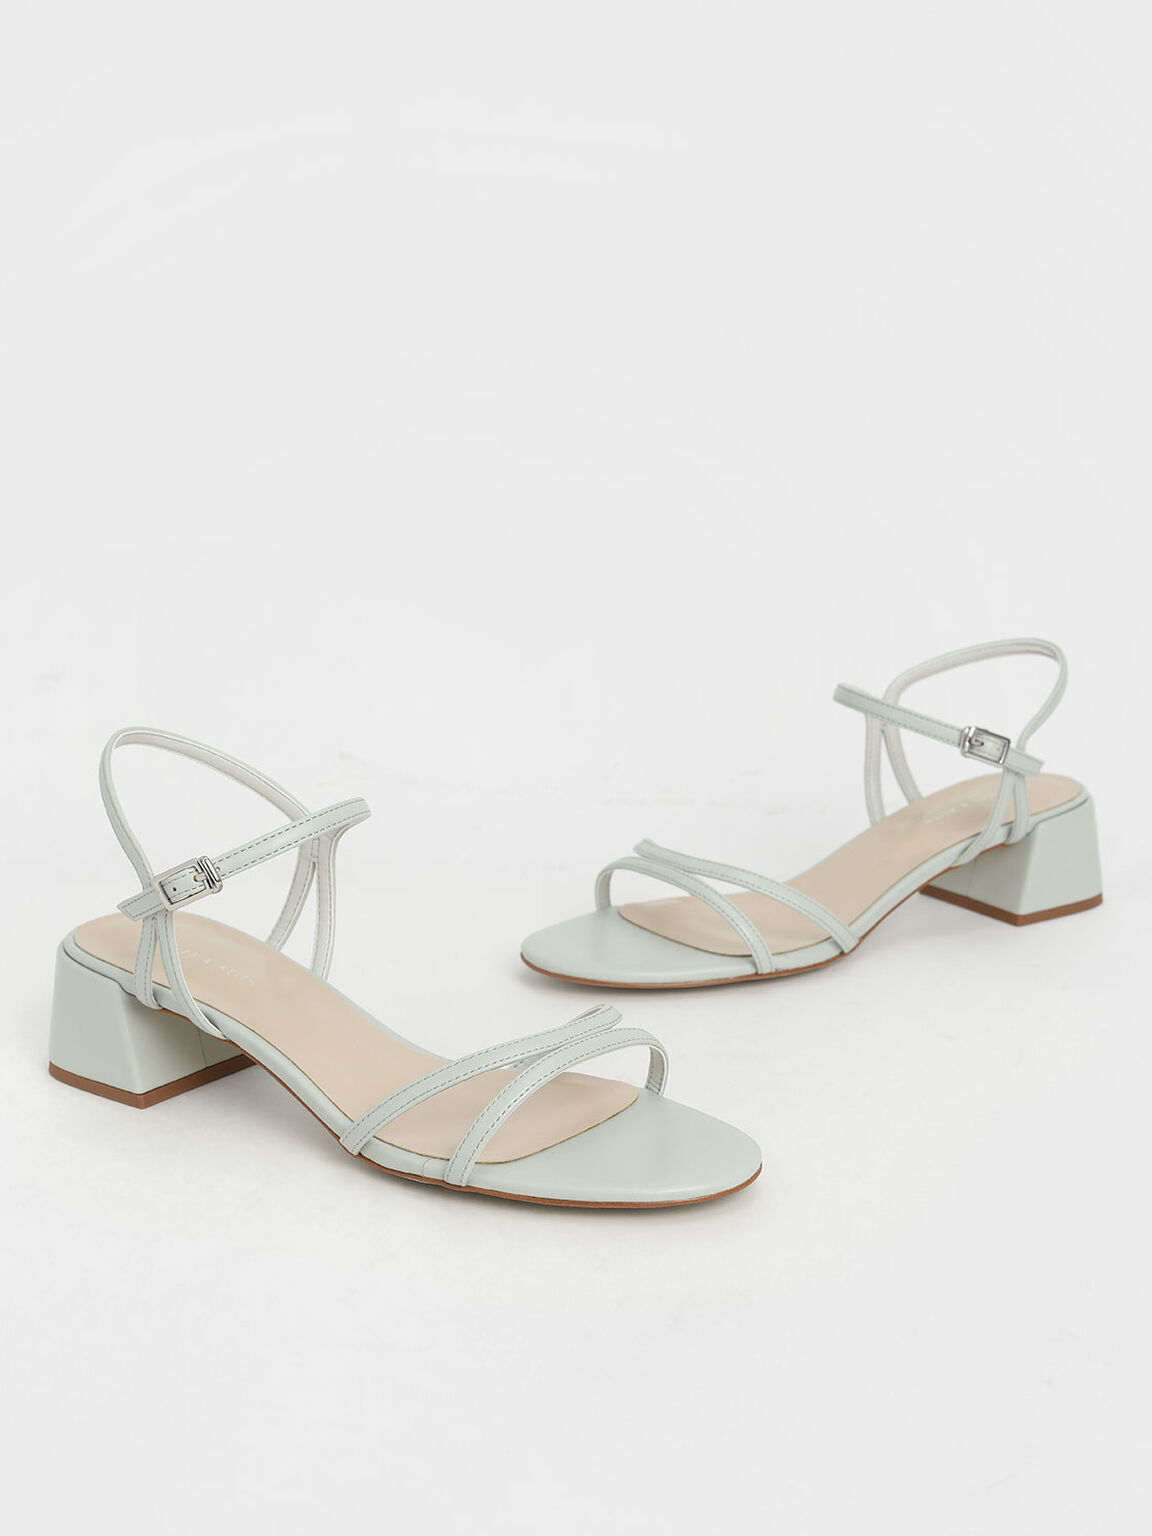 Strappy Block Heel Sandals, Grey, hi-res